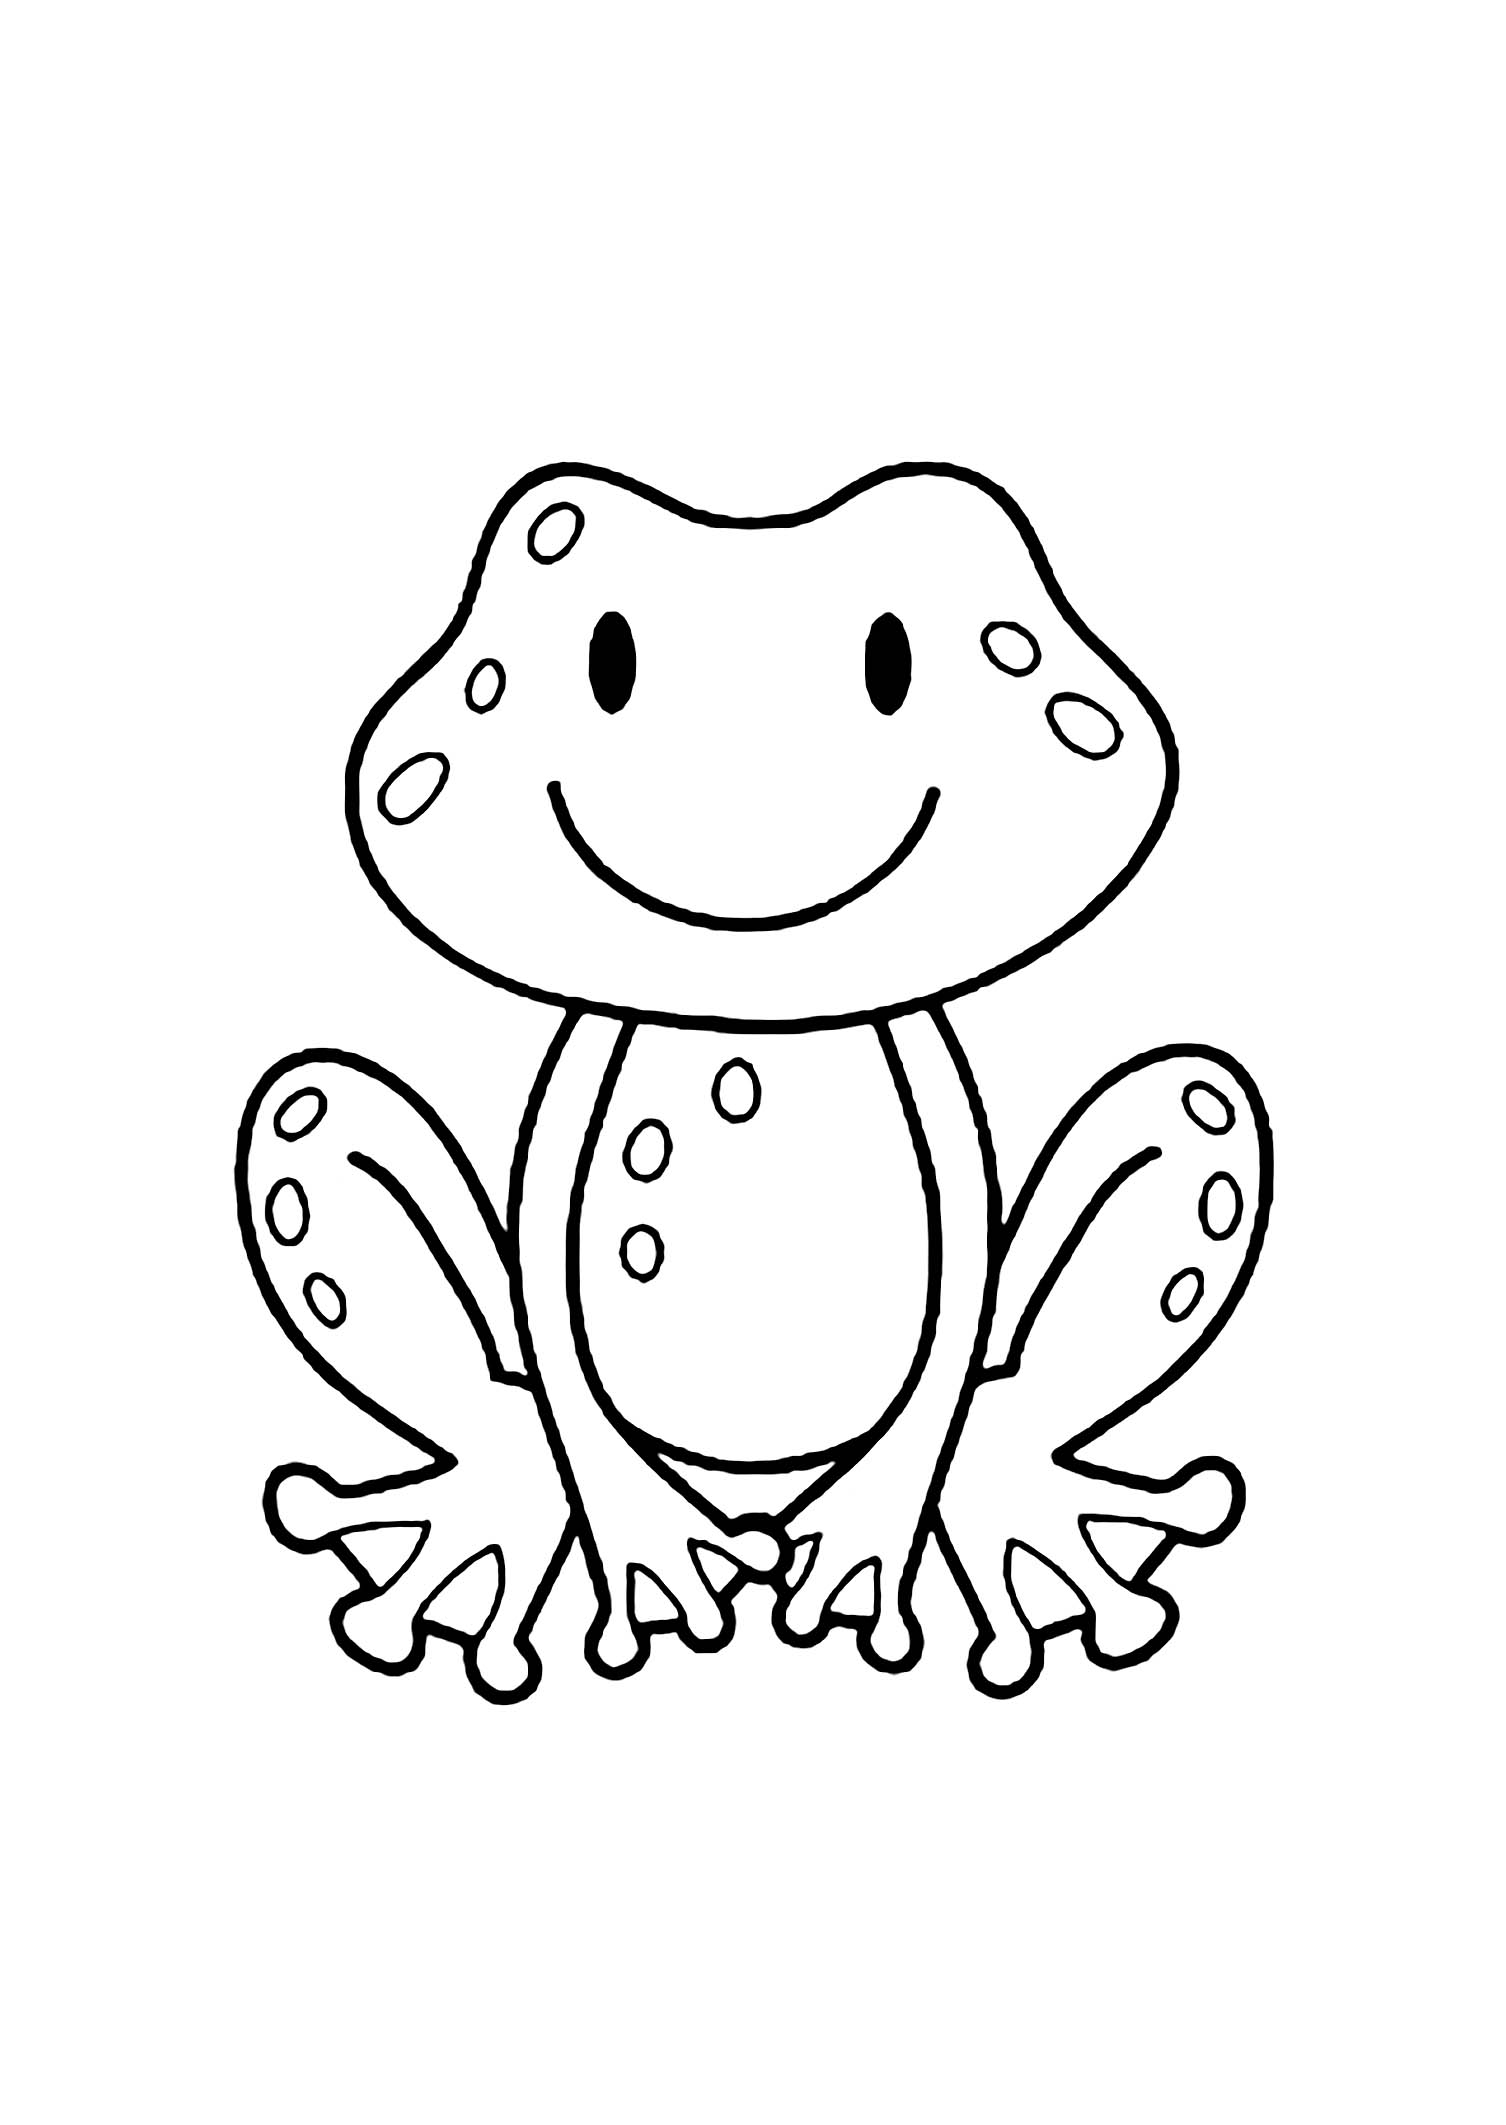 pictures of frogs to color frogs to color for children frogs kids coloring pages pictures of to color frogs